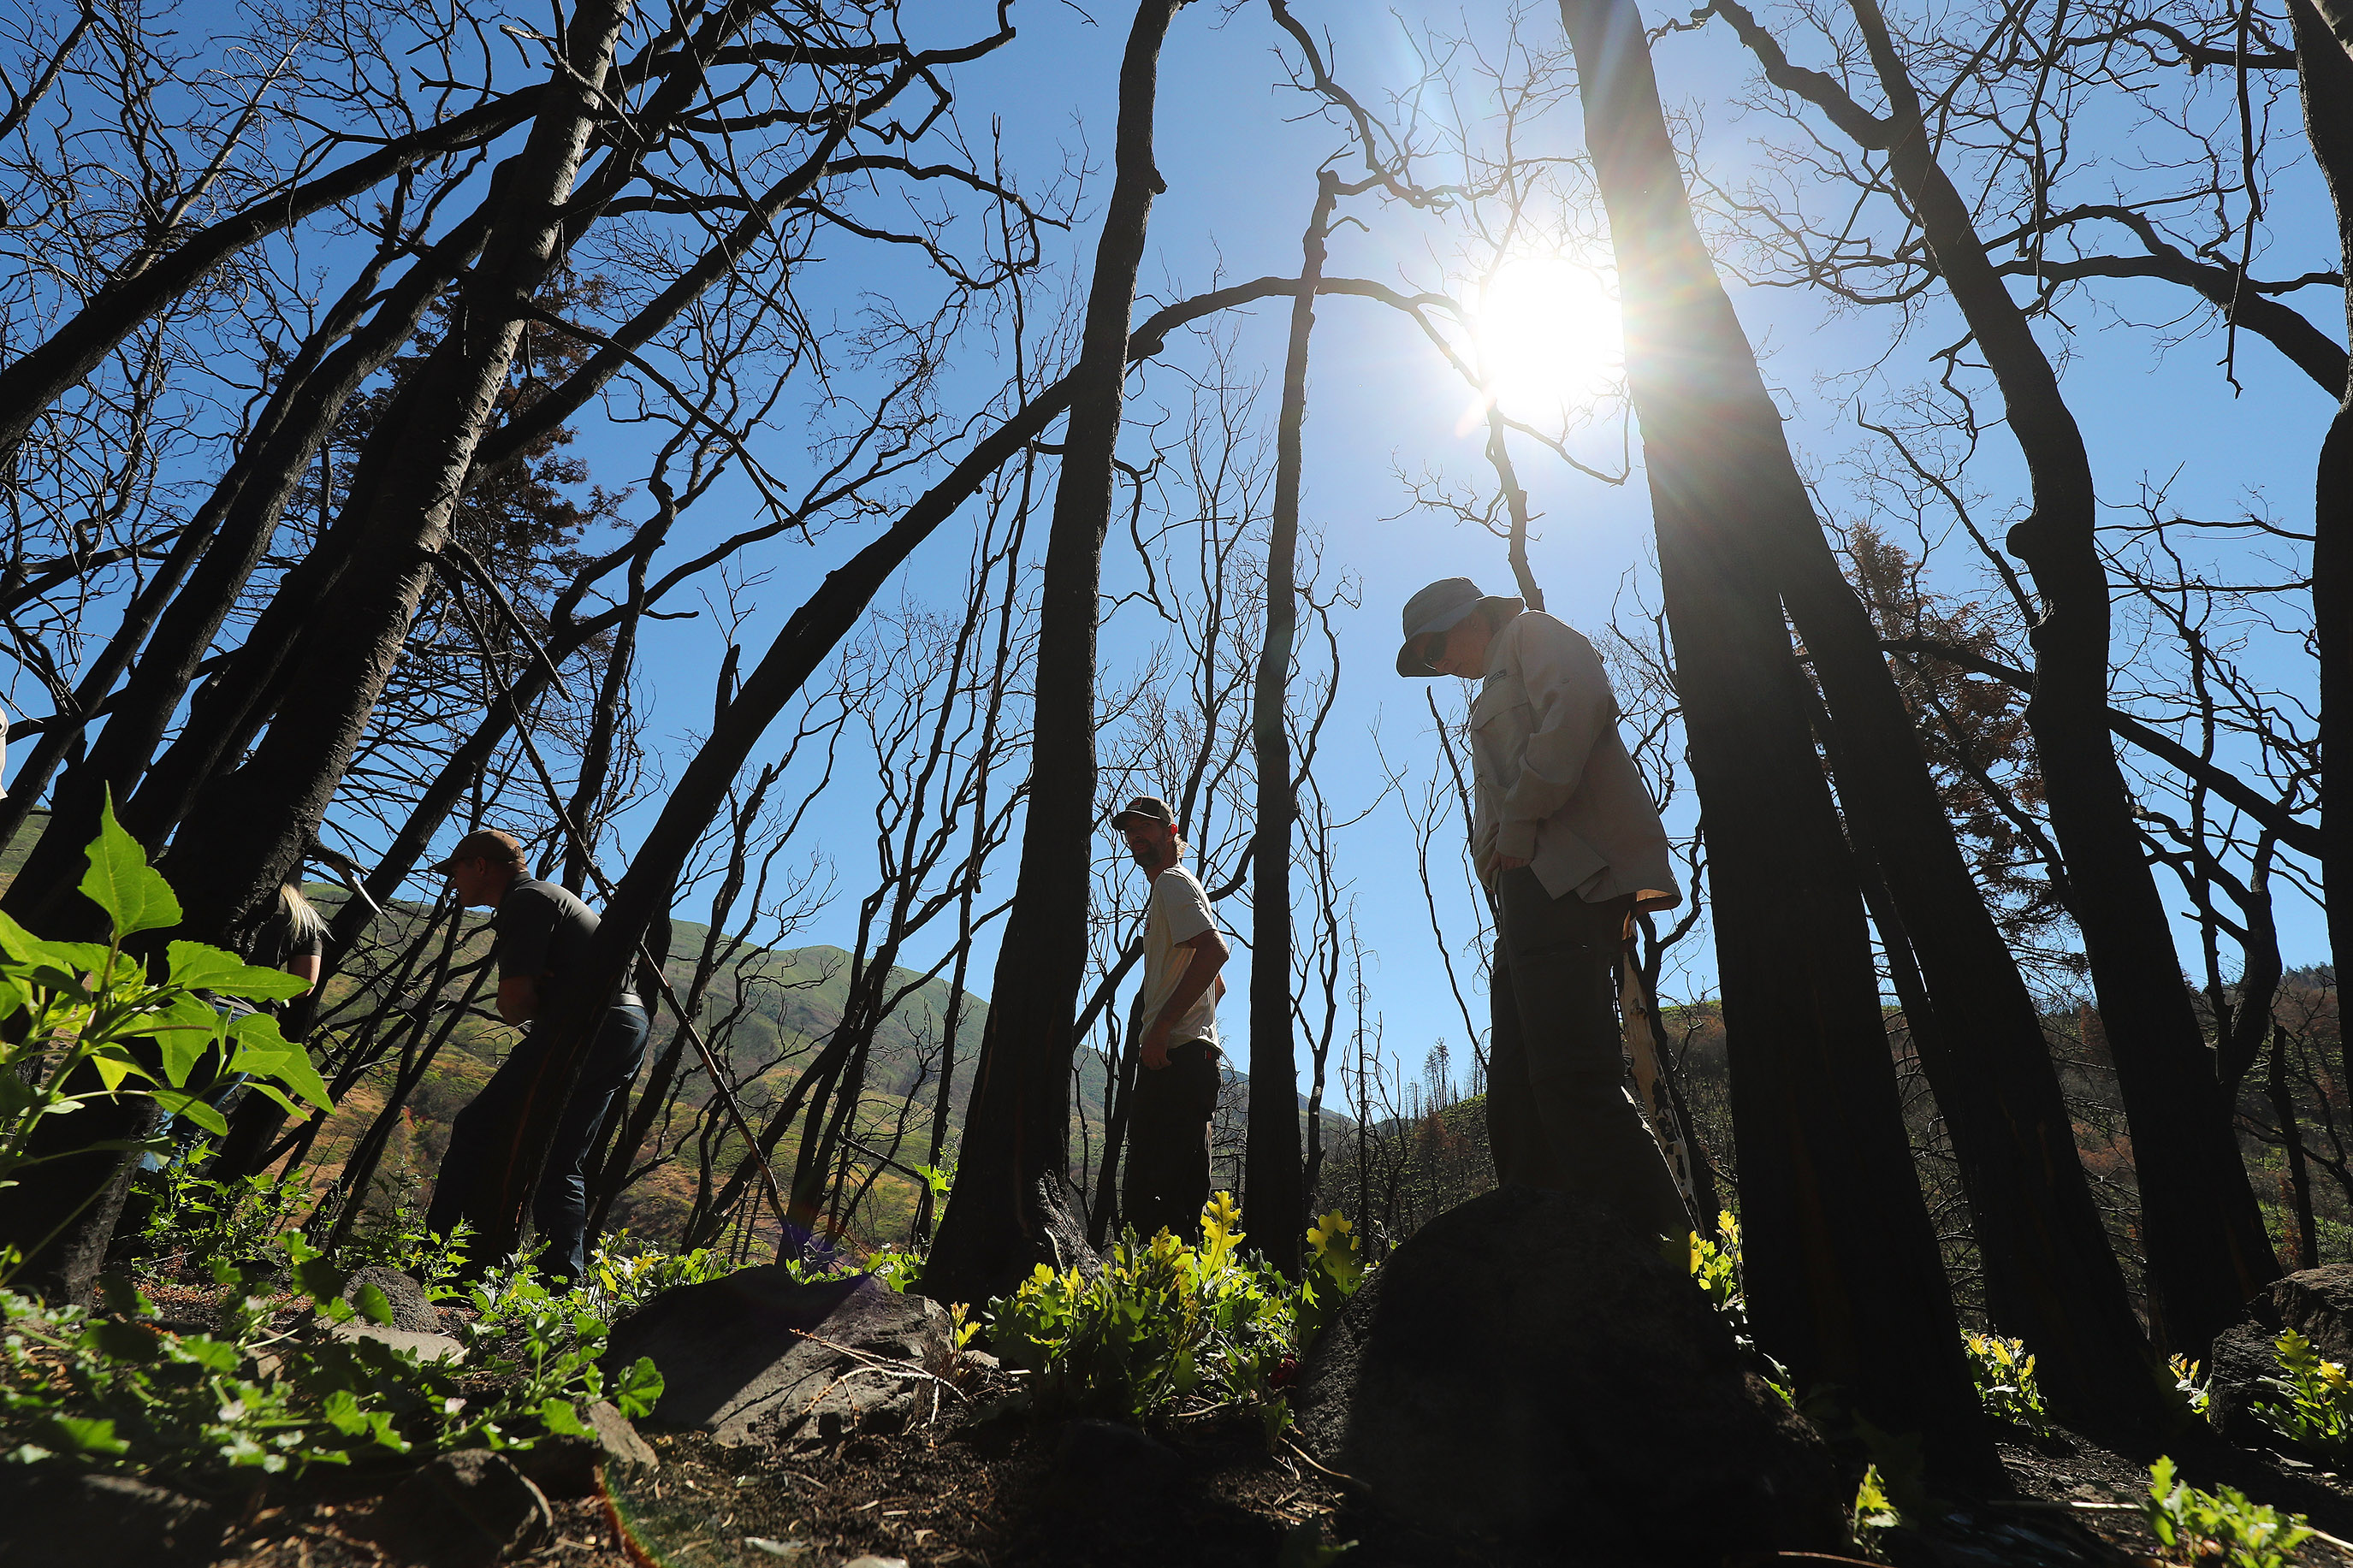 Officials with the Bureau of Land Management, the Utah Department of Natural Resources, the Utah Division of Wildlife and the Forest Service tour areas affected by the Pole Creek and Bald Mountain fires in Utah County on Tuesday, July 16, 2019.